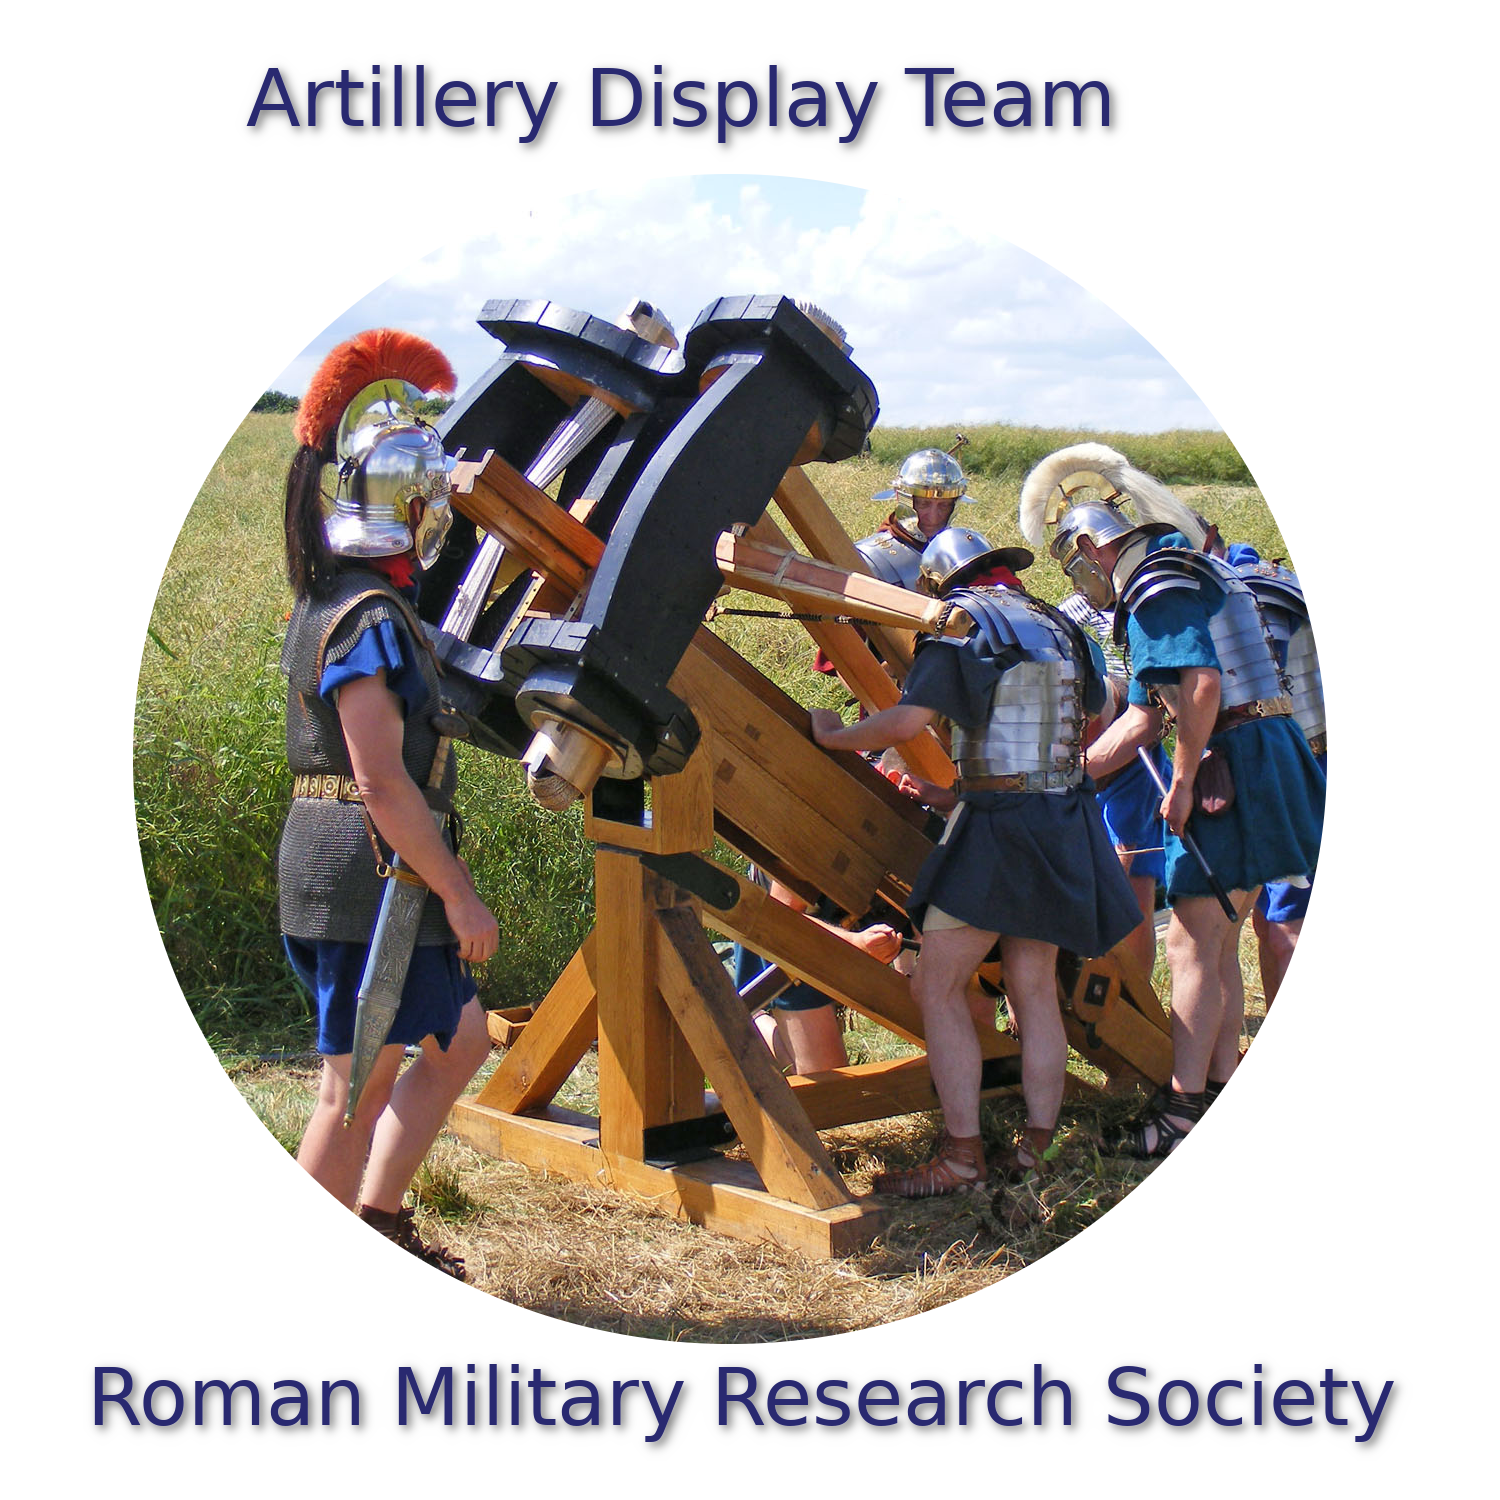 RMRS Artillery Display Team